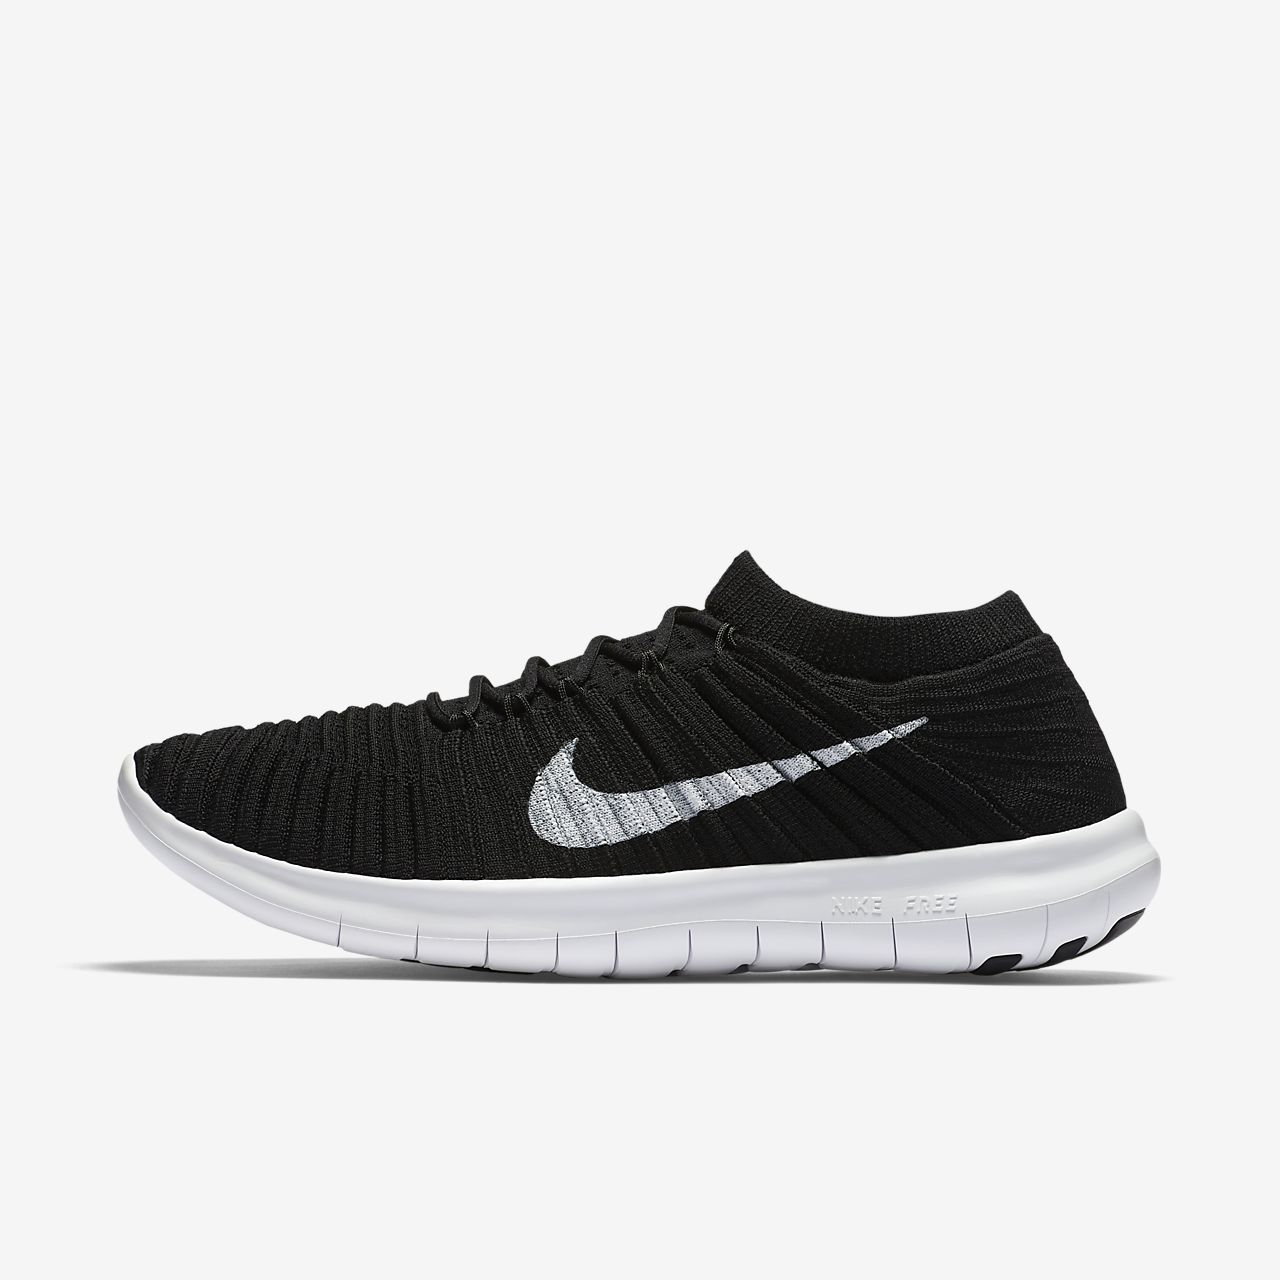 nike free flyknit 4.0 overpronation vs under pronation